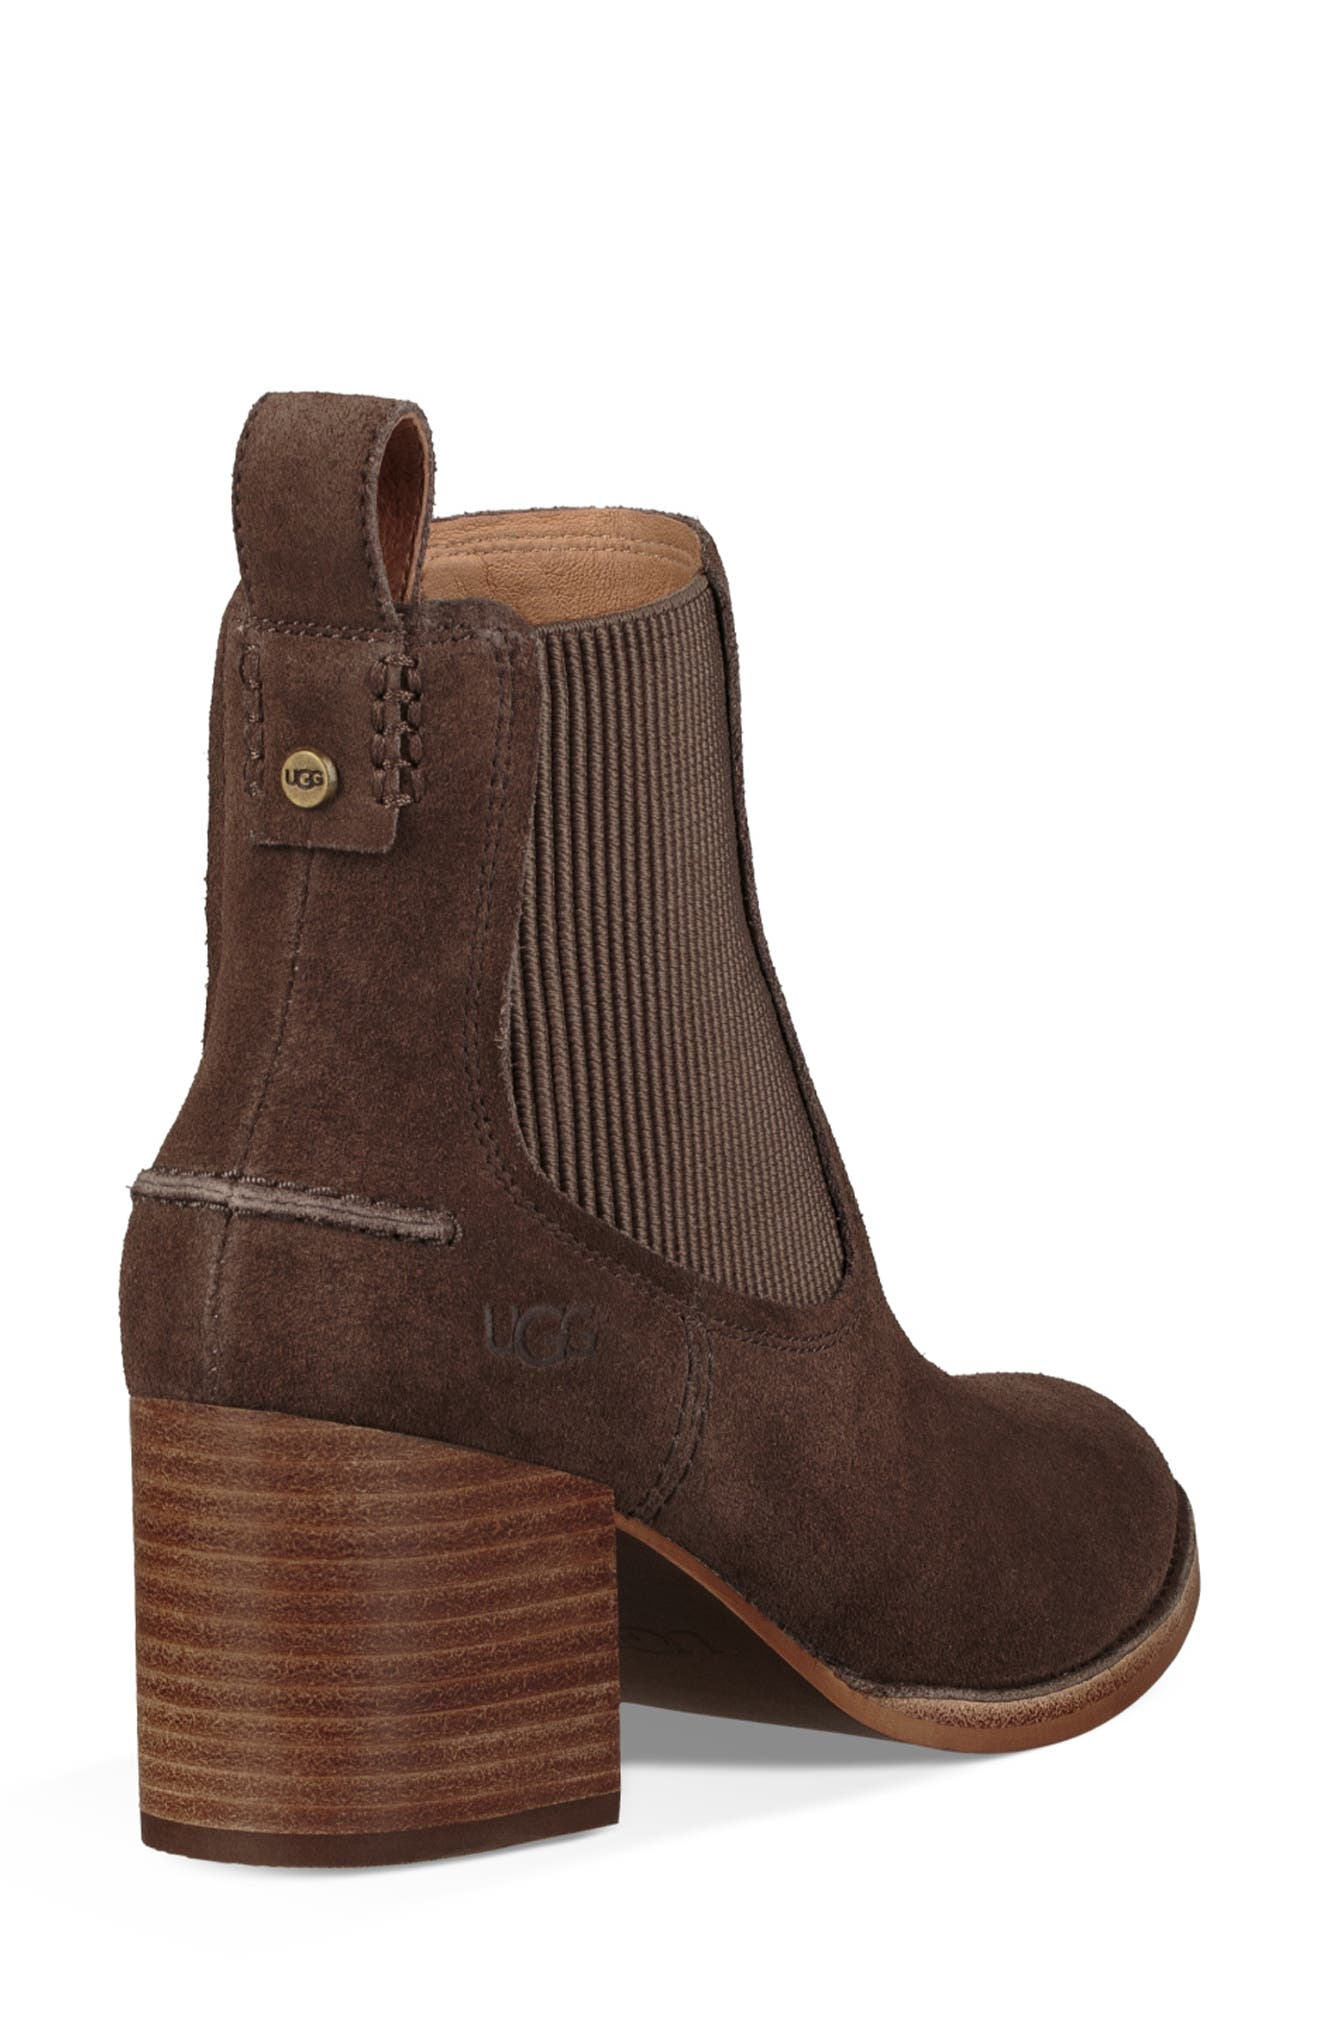 Faye Chelsea Bootie,                             Alternate thumbnail 2, color,                             MYSTERIOUS SUEDE